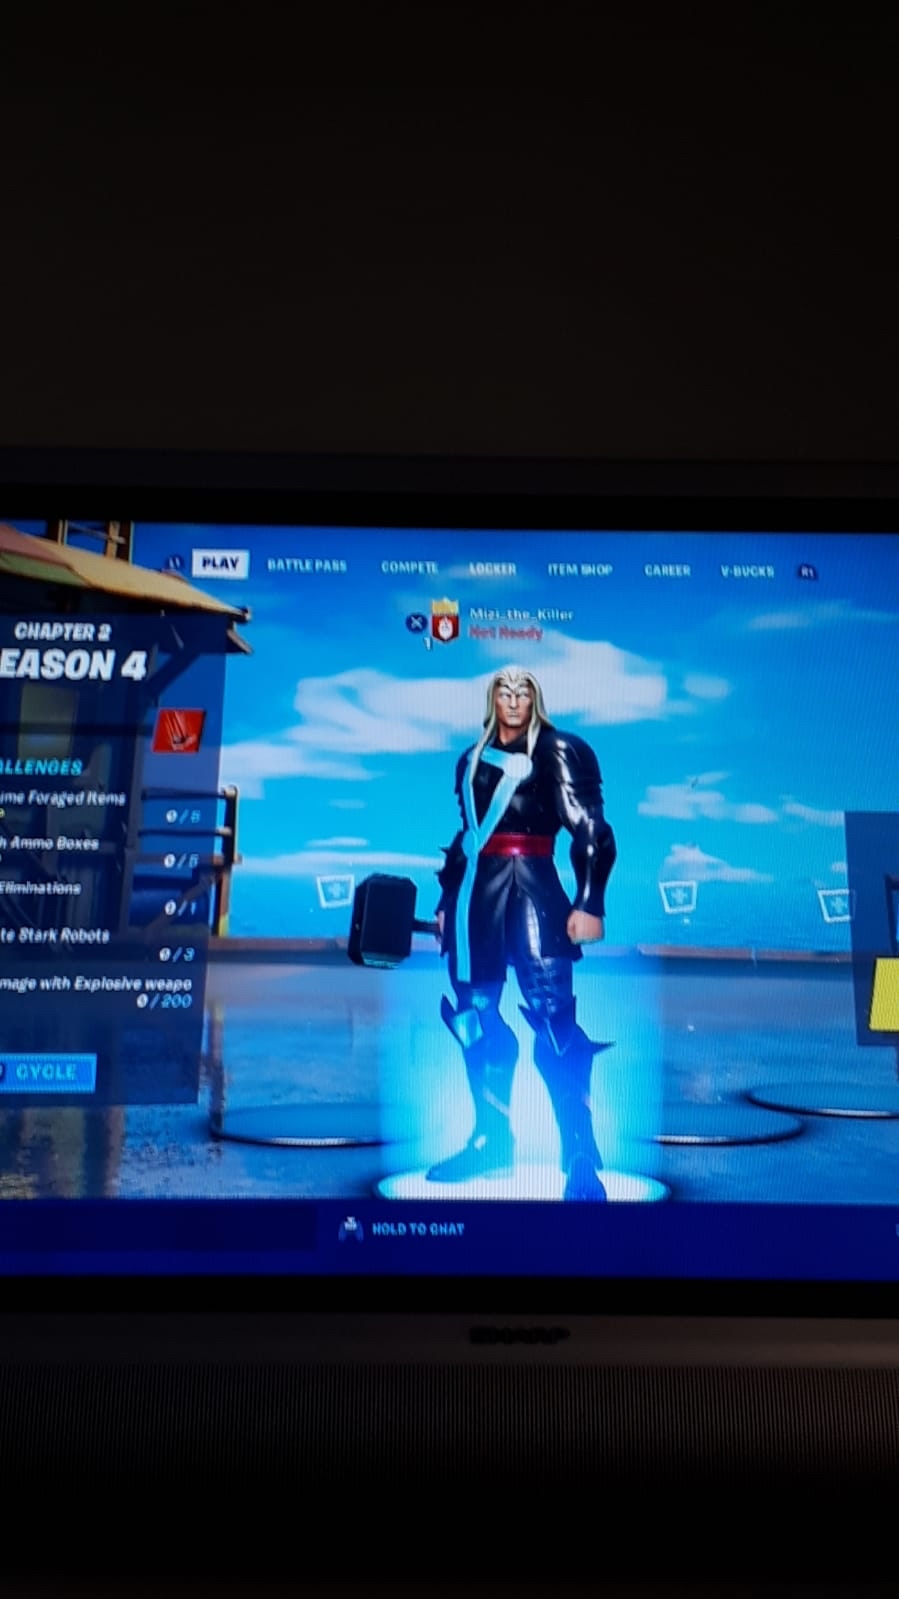 The 8 Year Old Mizi_the_killer got Banned From Fortnite For Being Too Young